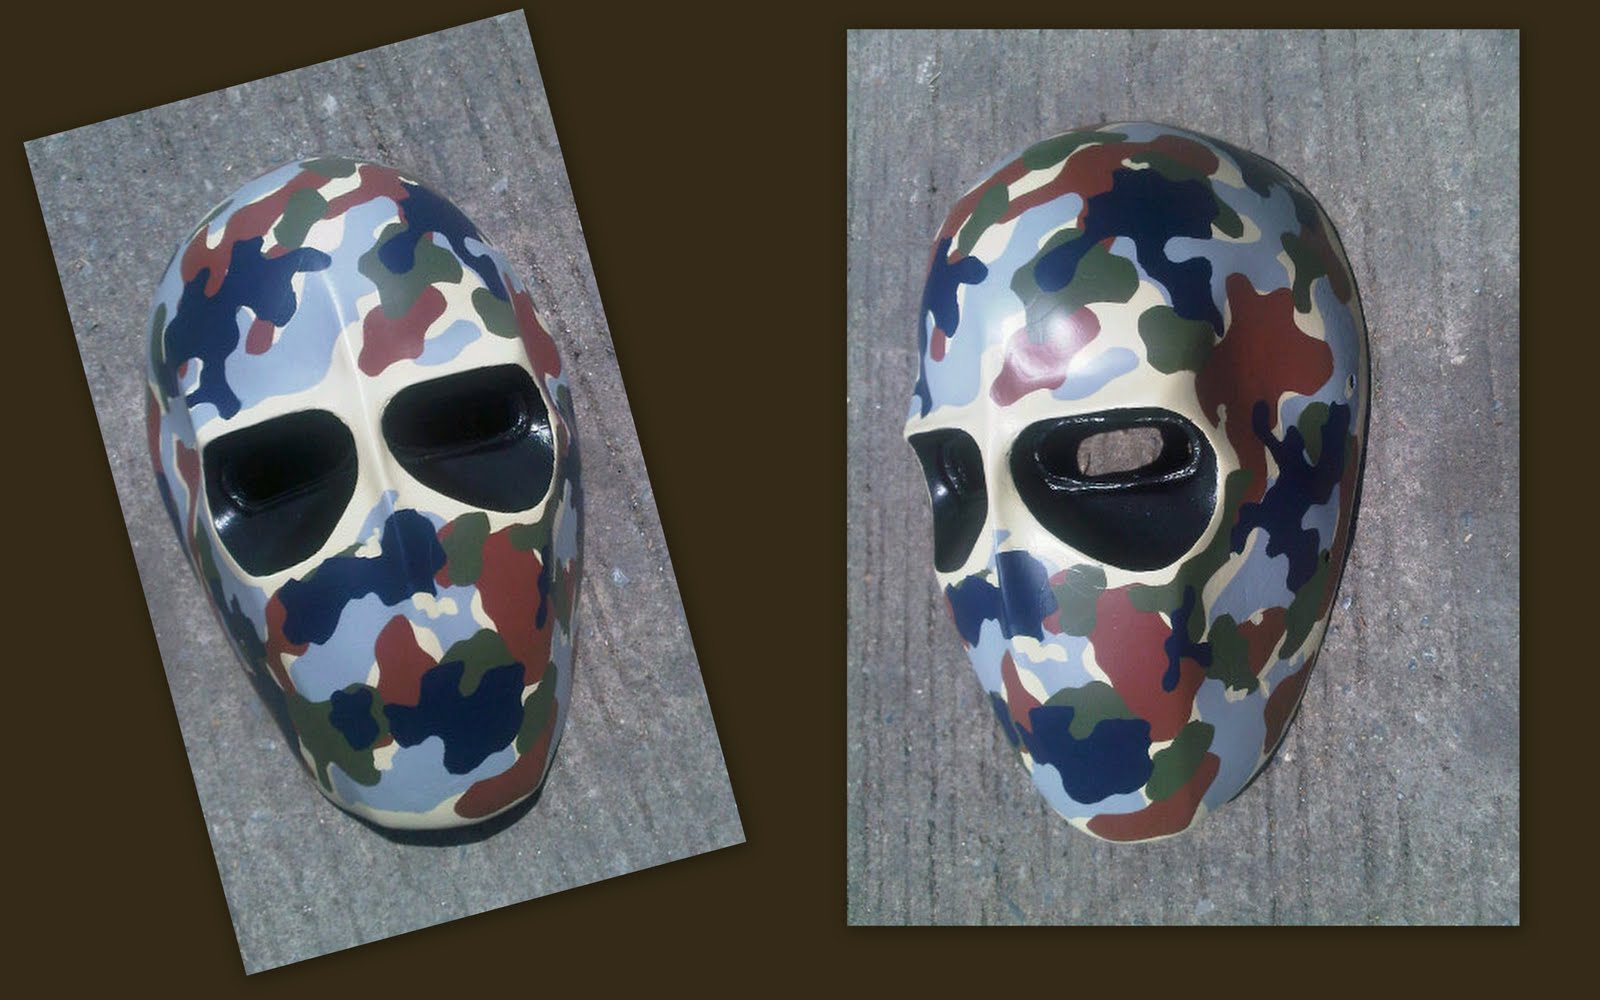 ARMY OF TWO MASK FOR SALE: Army of two mask custom made ...